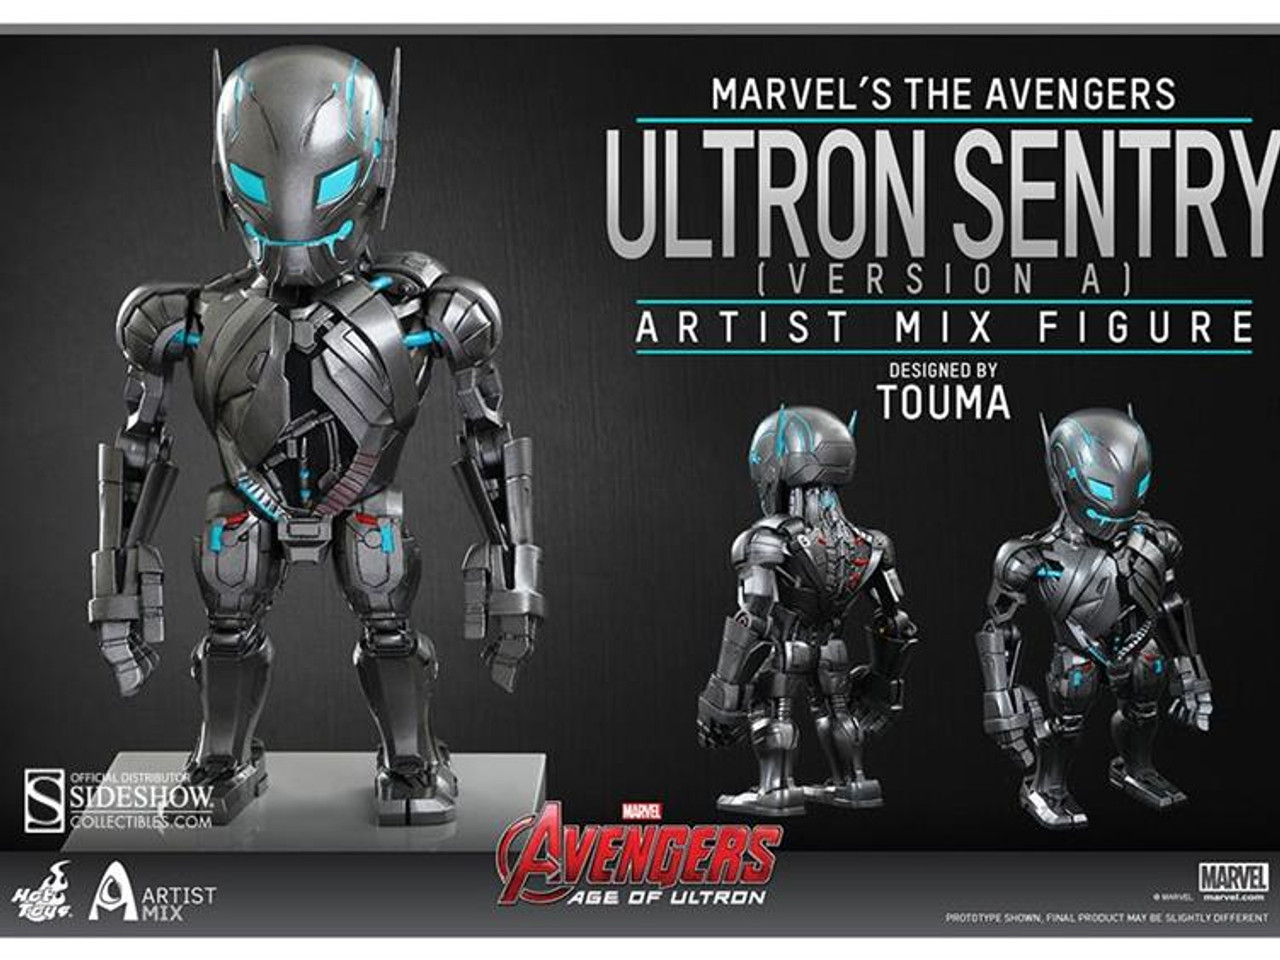 Marvel Avengers Age of Ultron Artist Mix Figure Series 1 Ultron Sentry Action Figure [Version A]